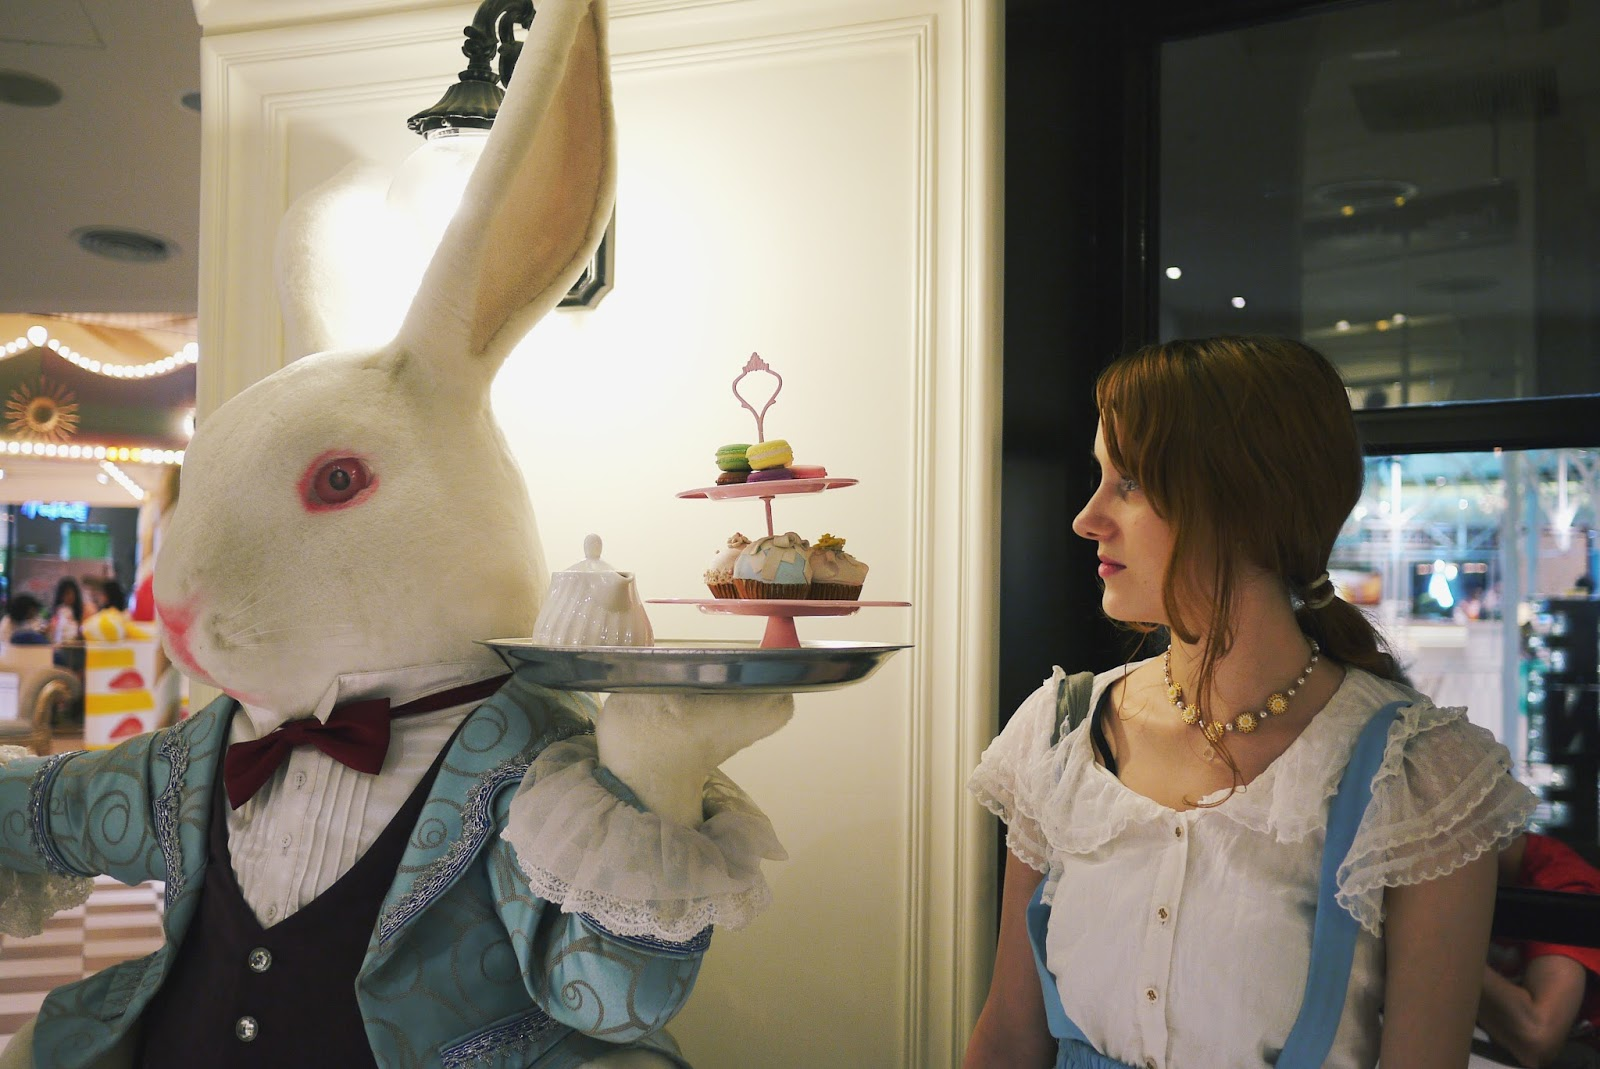 xinyi taipei att4fun alice in wonderland white rabbit photo